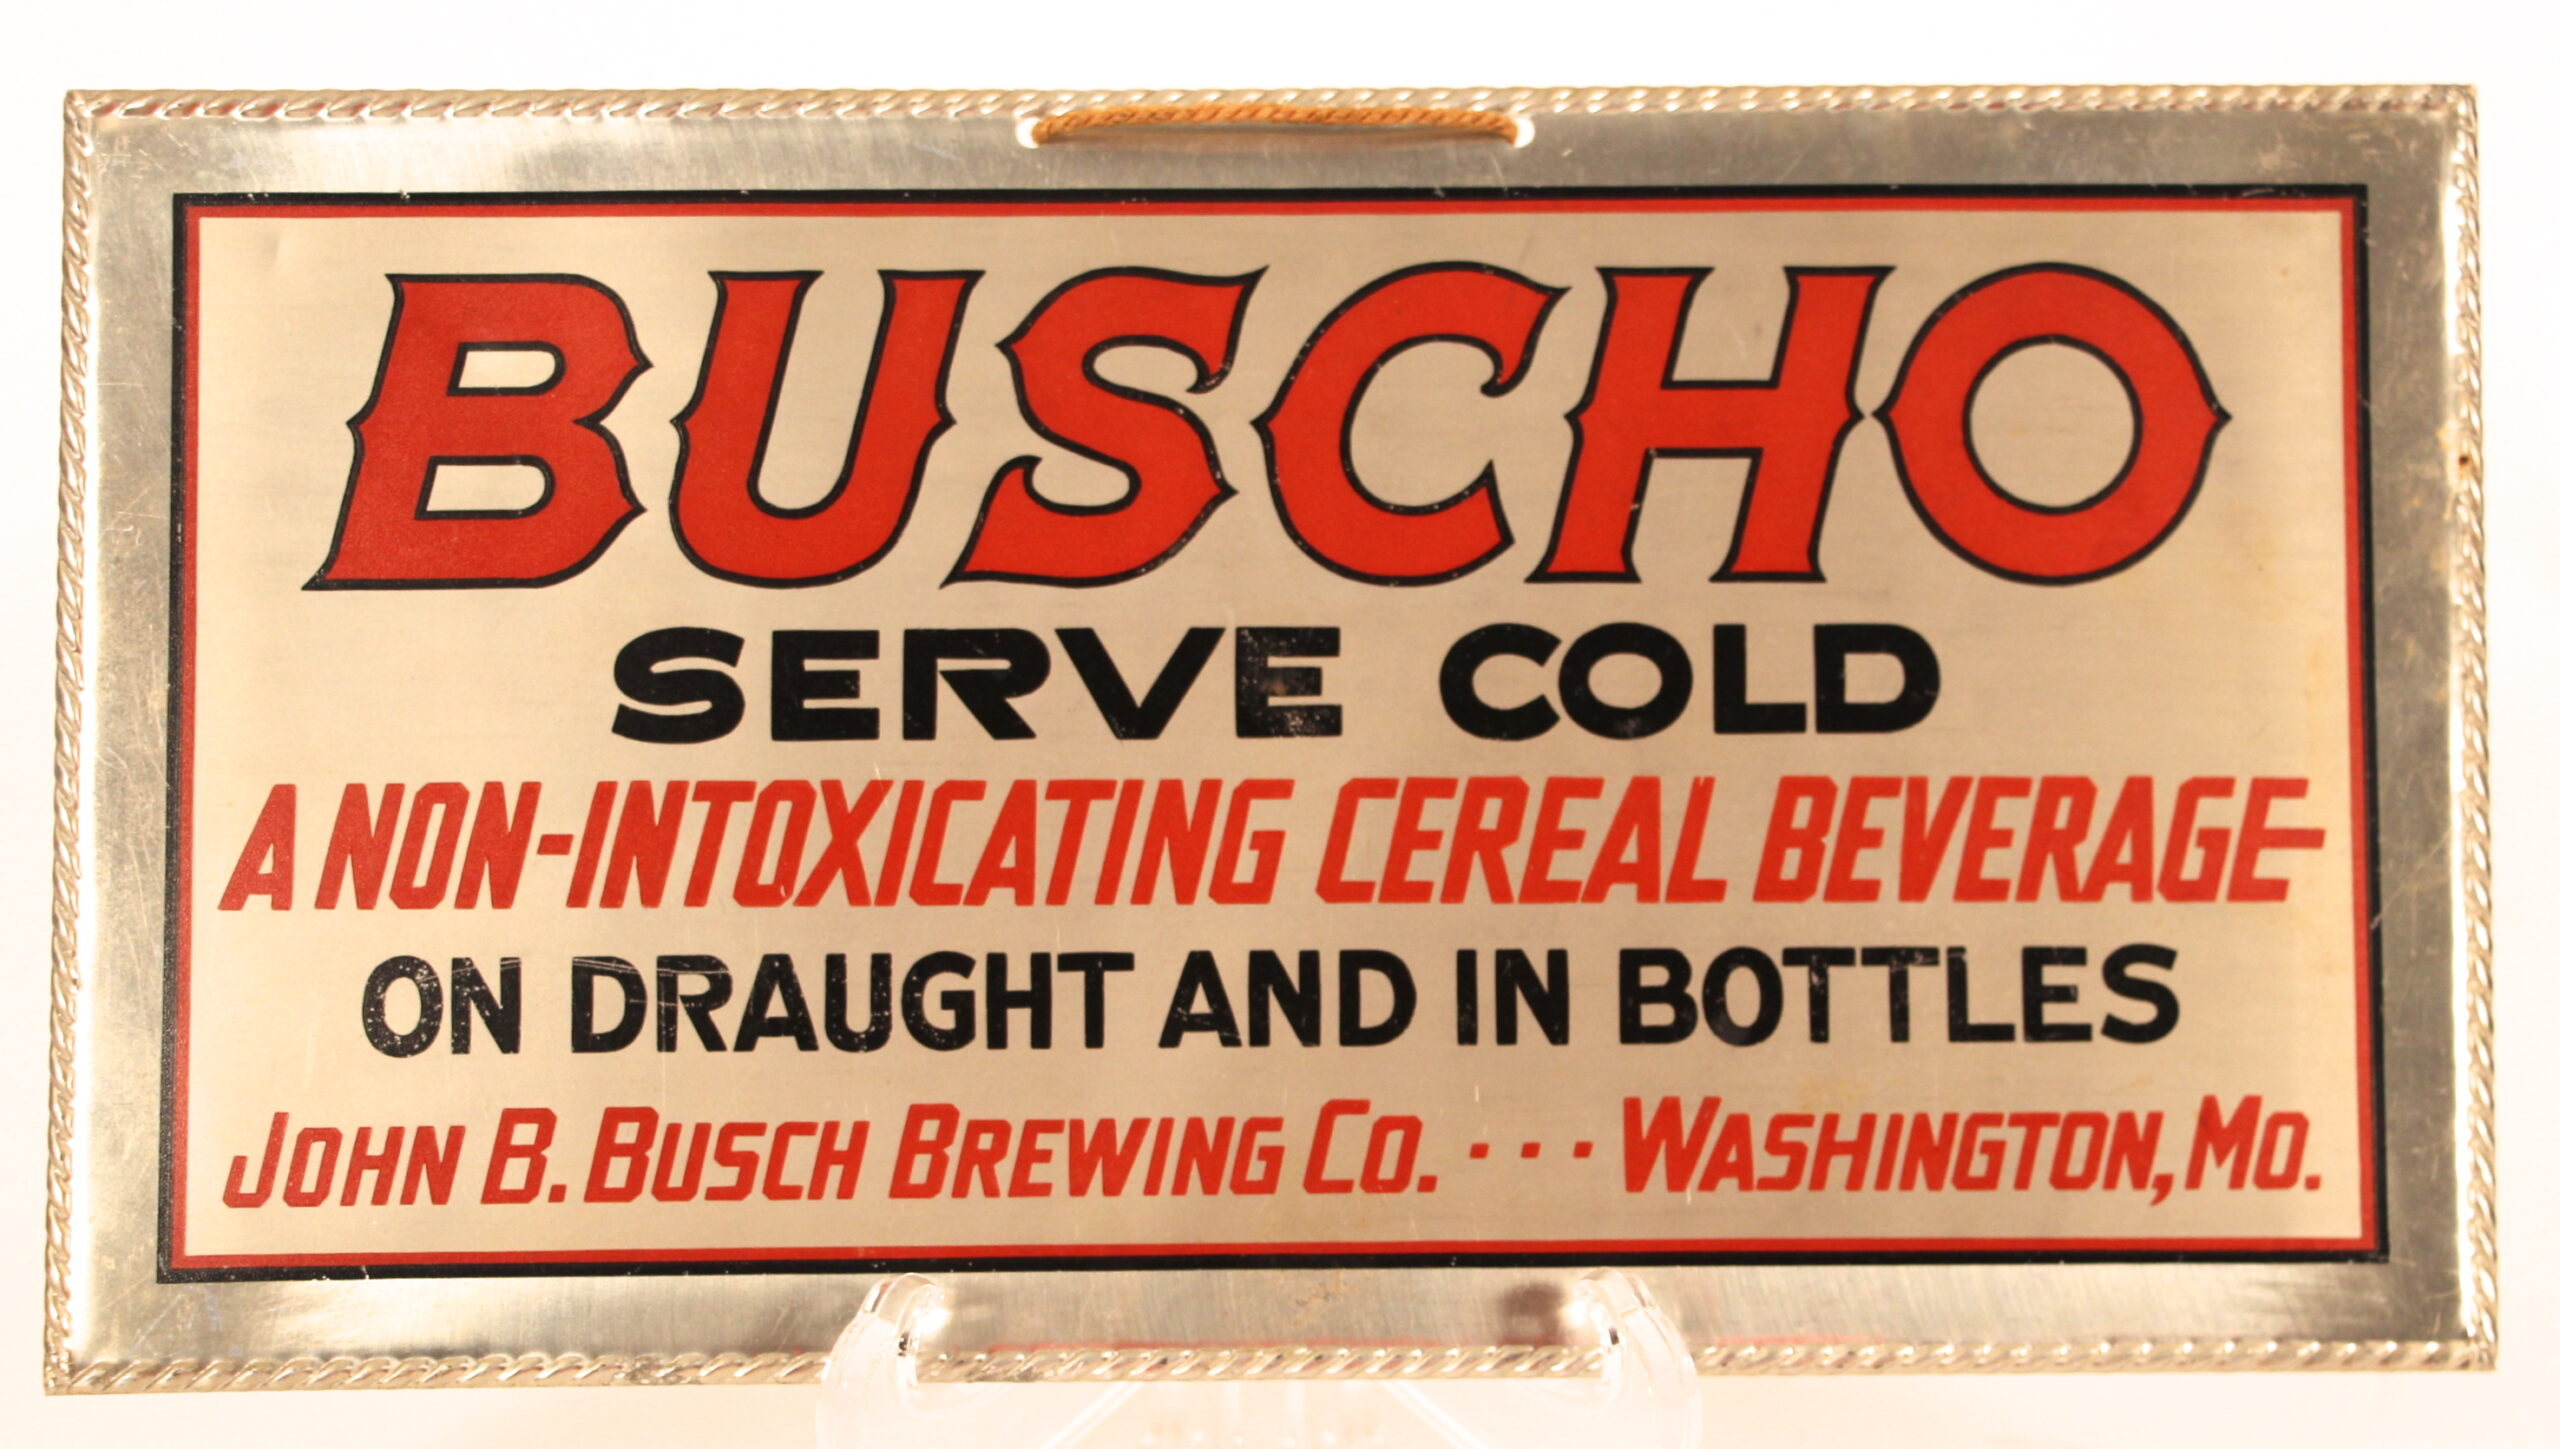 Buscho Cereal Beverage Tin Sign, John B. Busch Brewing Co., Washington, MO. Circa 1918